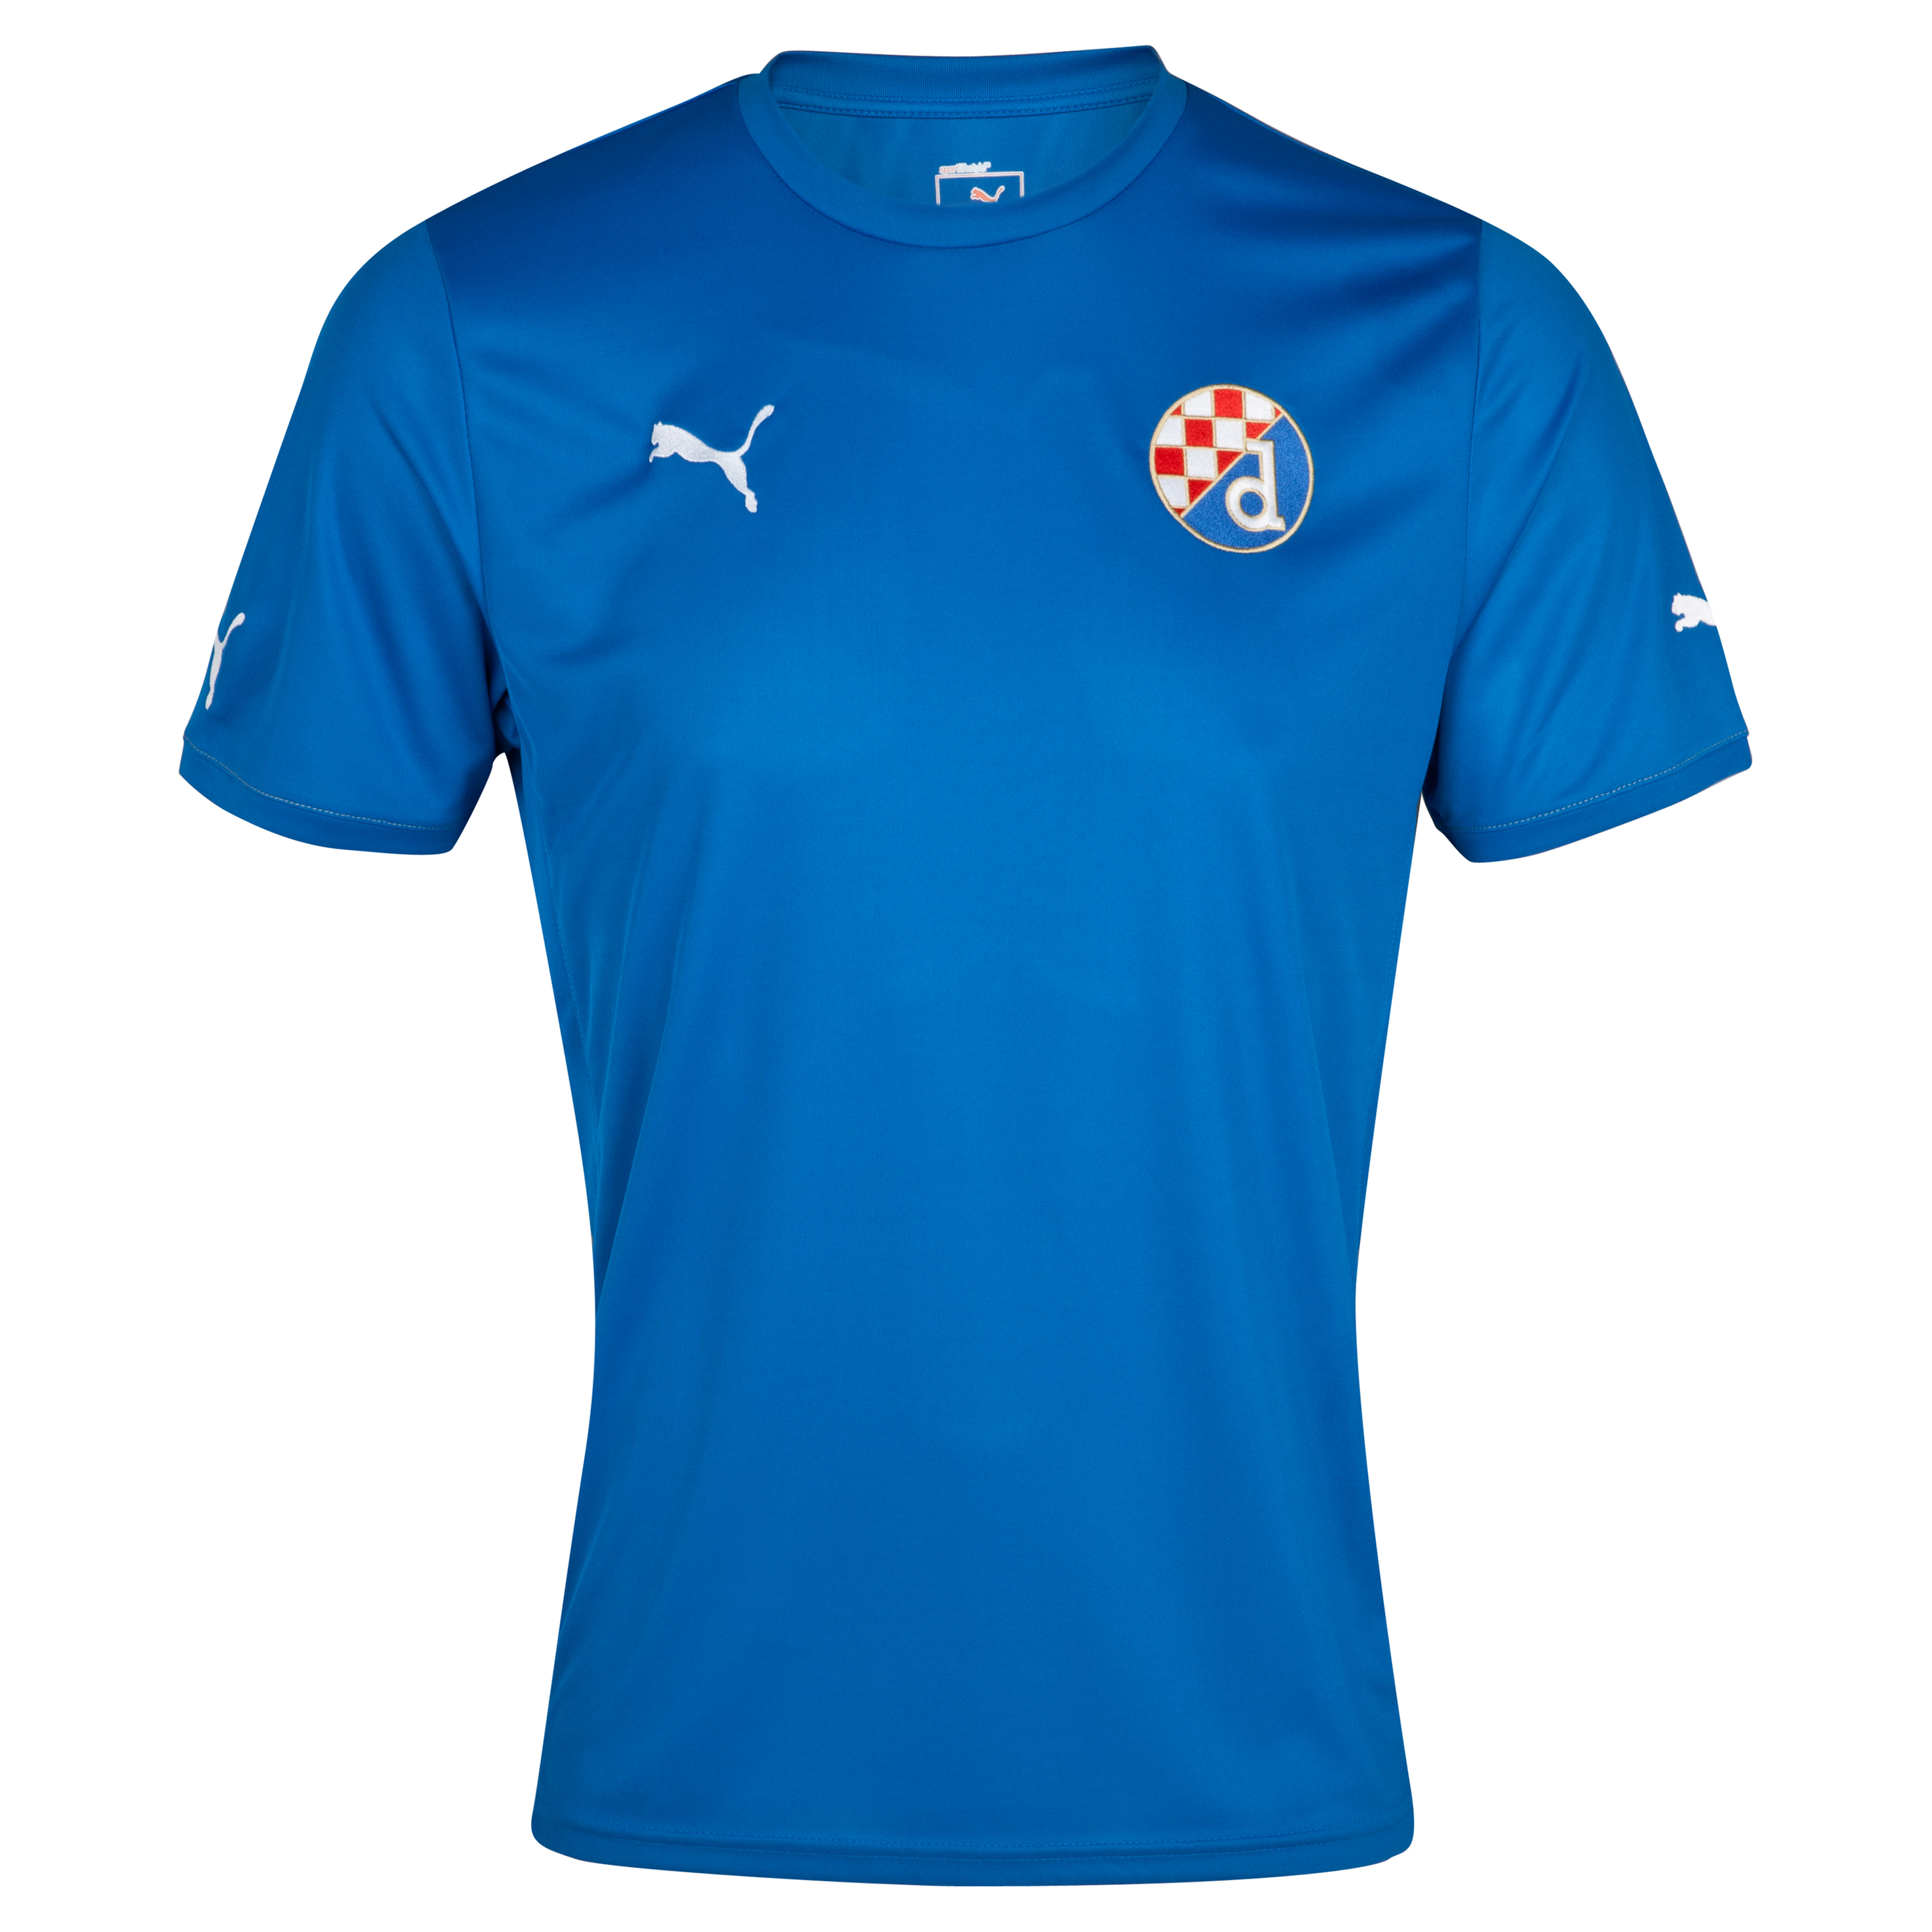 Dinamo Zagreb Home Shirt 2012/13